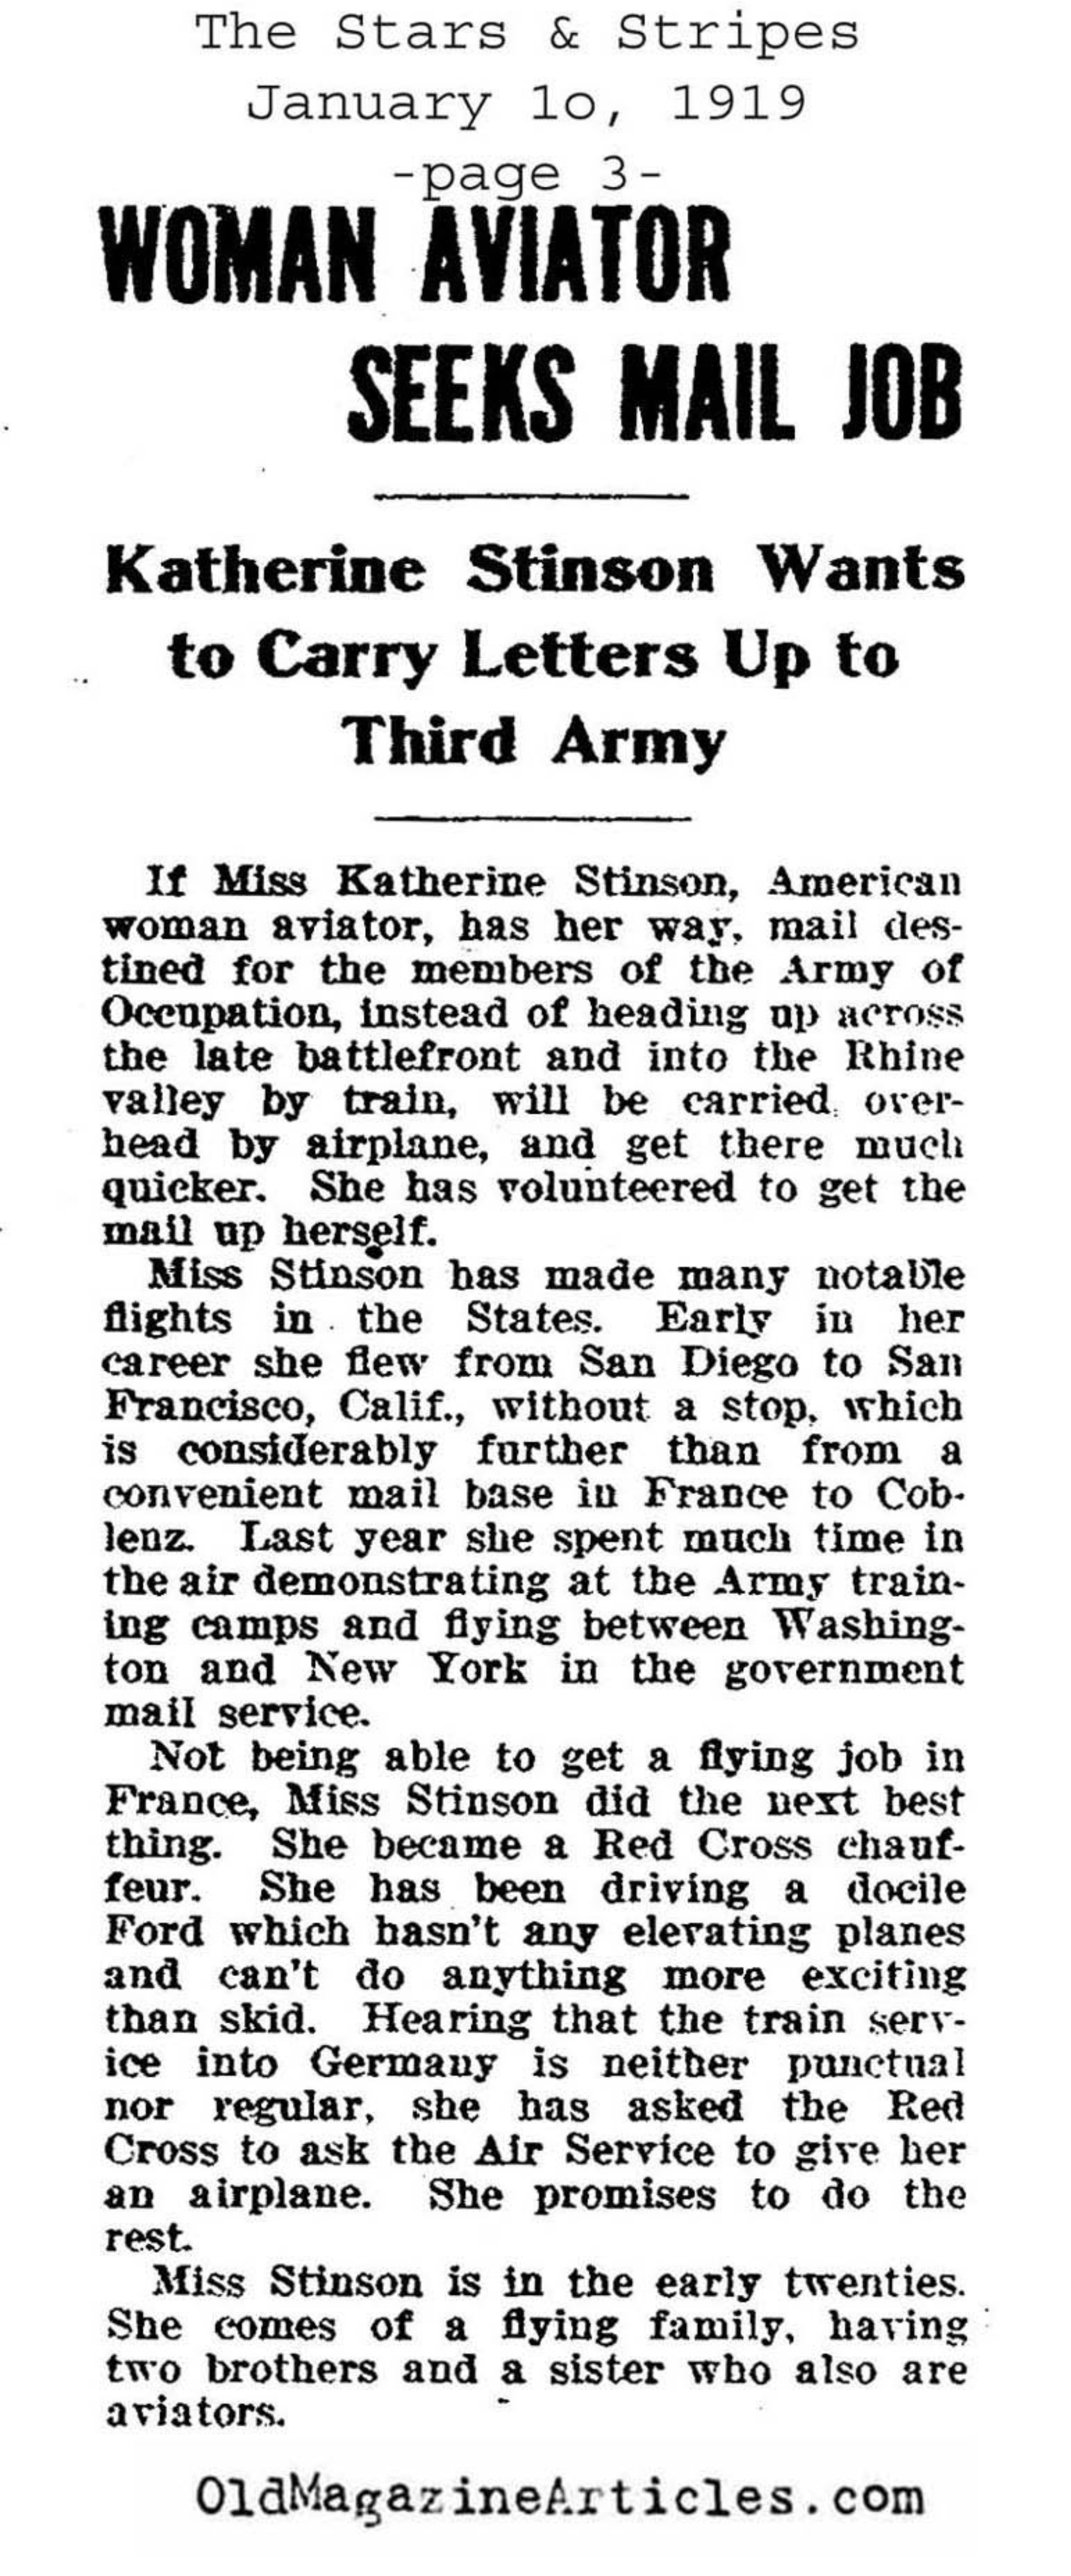 Katherine Stinson Offers Her Services to the Army  (The Stars and Stripes, 1919)